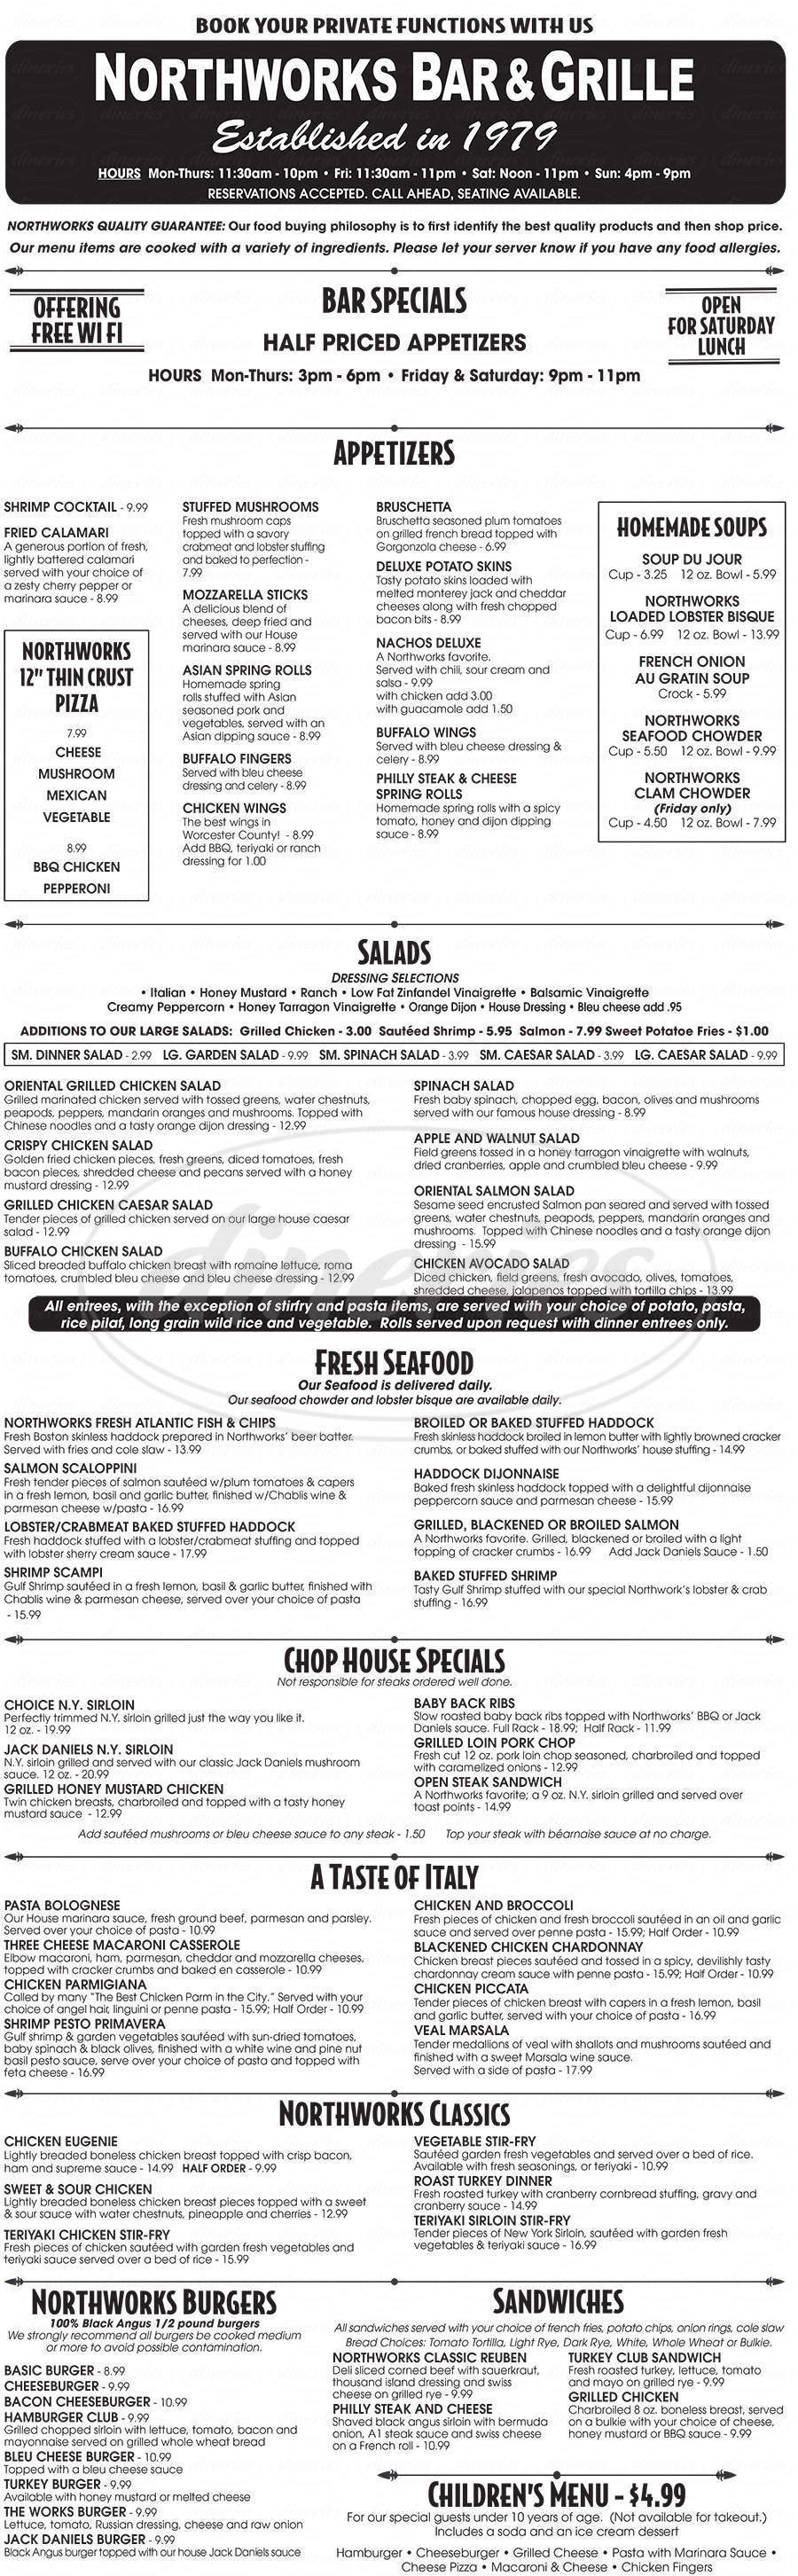 menu for Northworks Bar & Grille